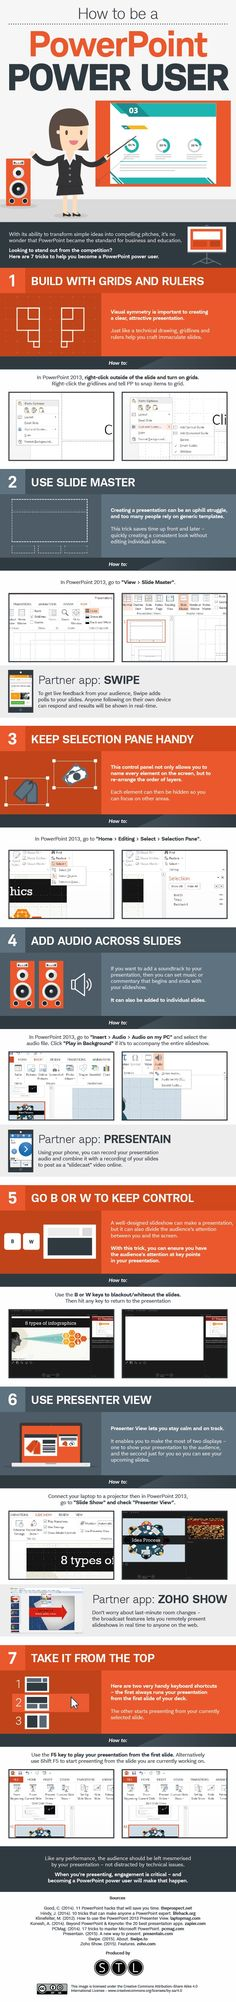 7 PowerPoint Tricks to Help You Become a Power User - #infographic